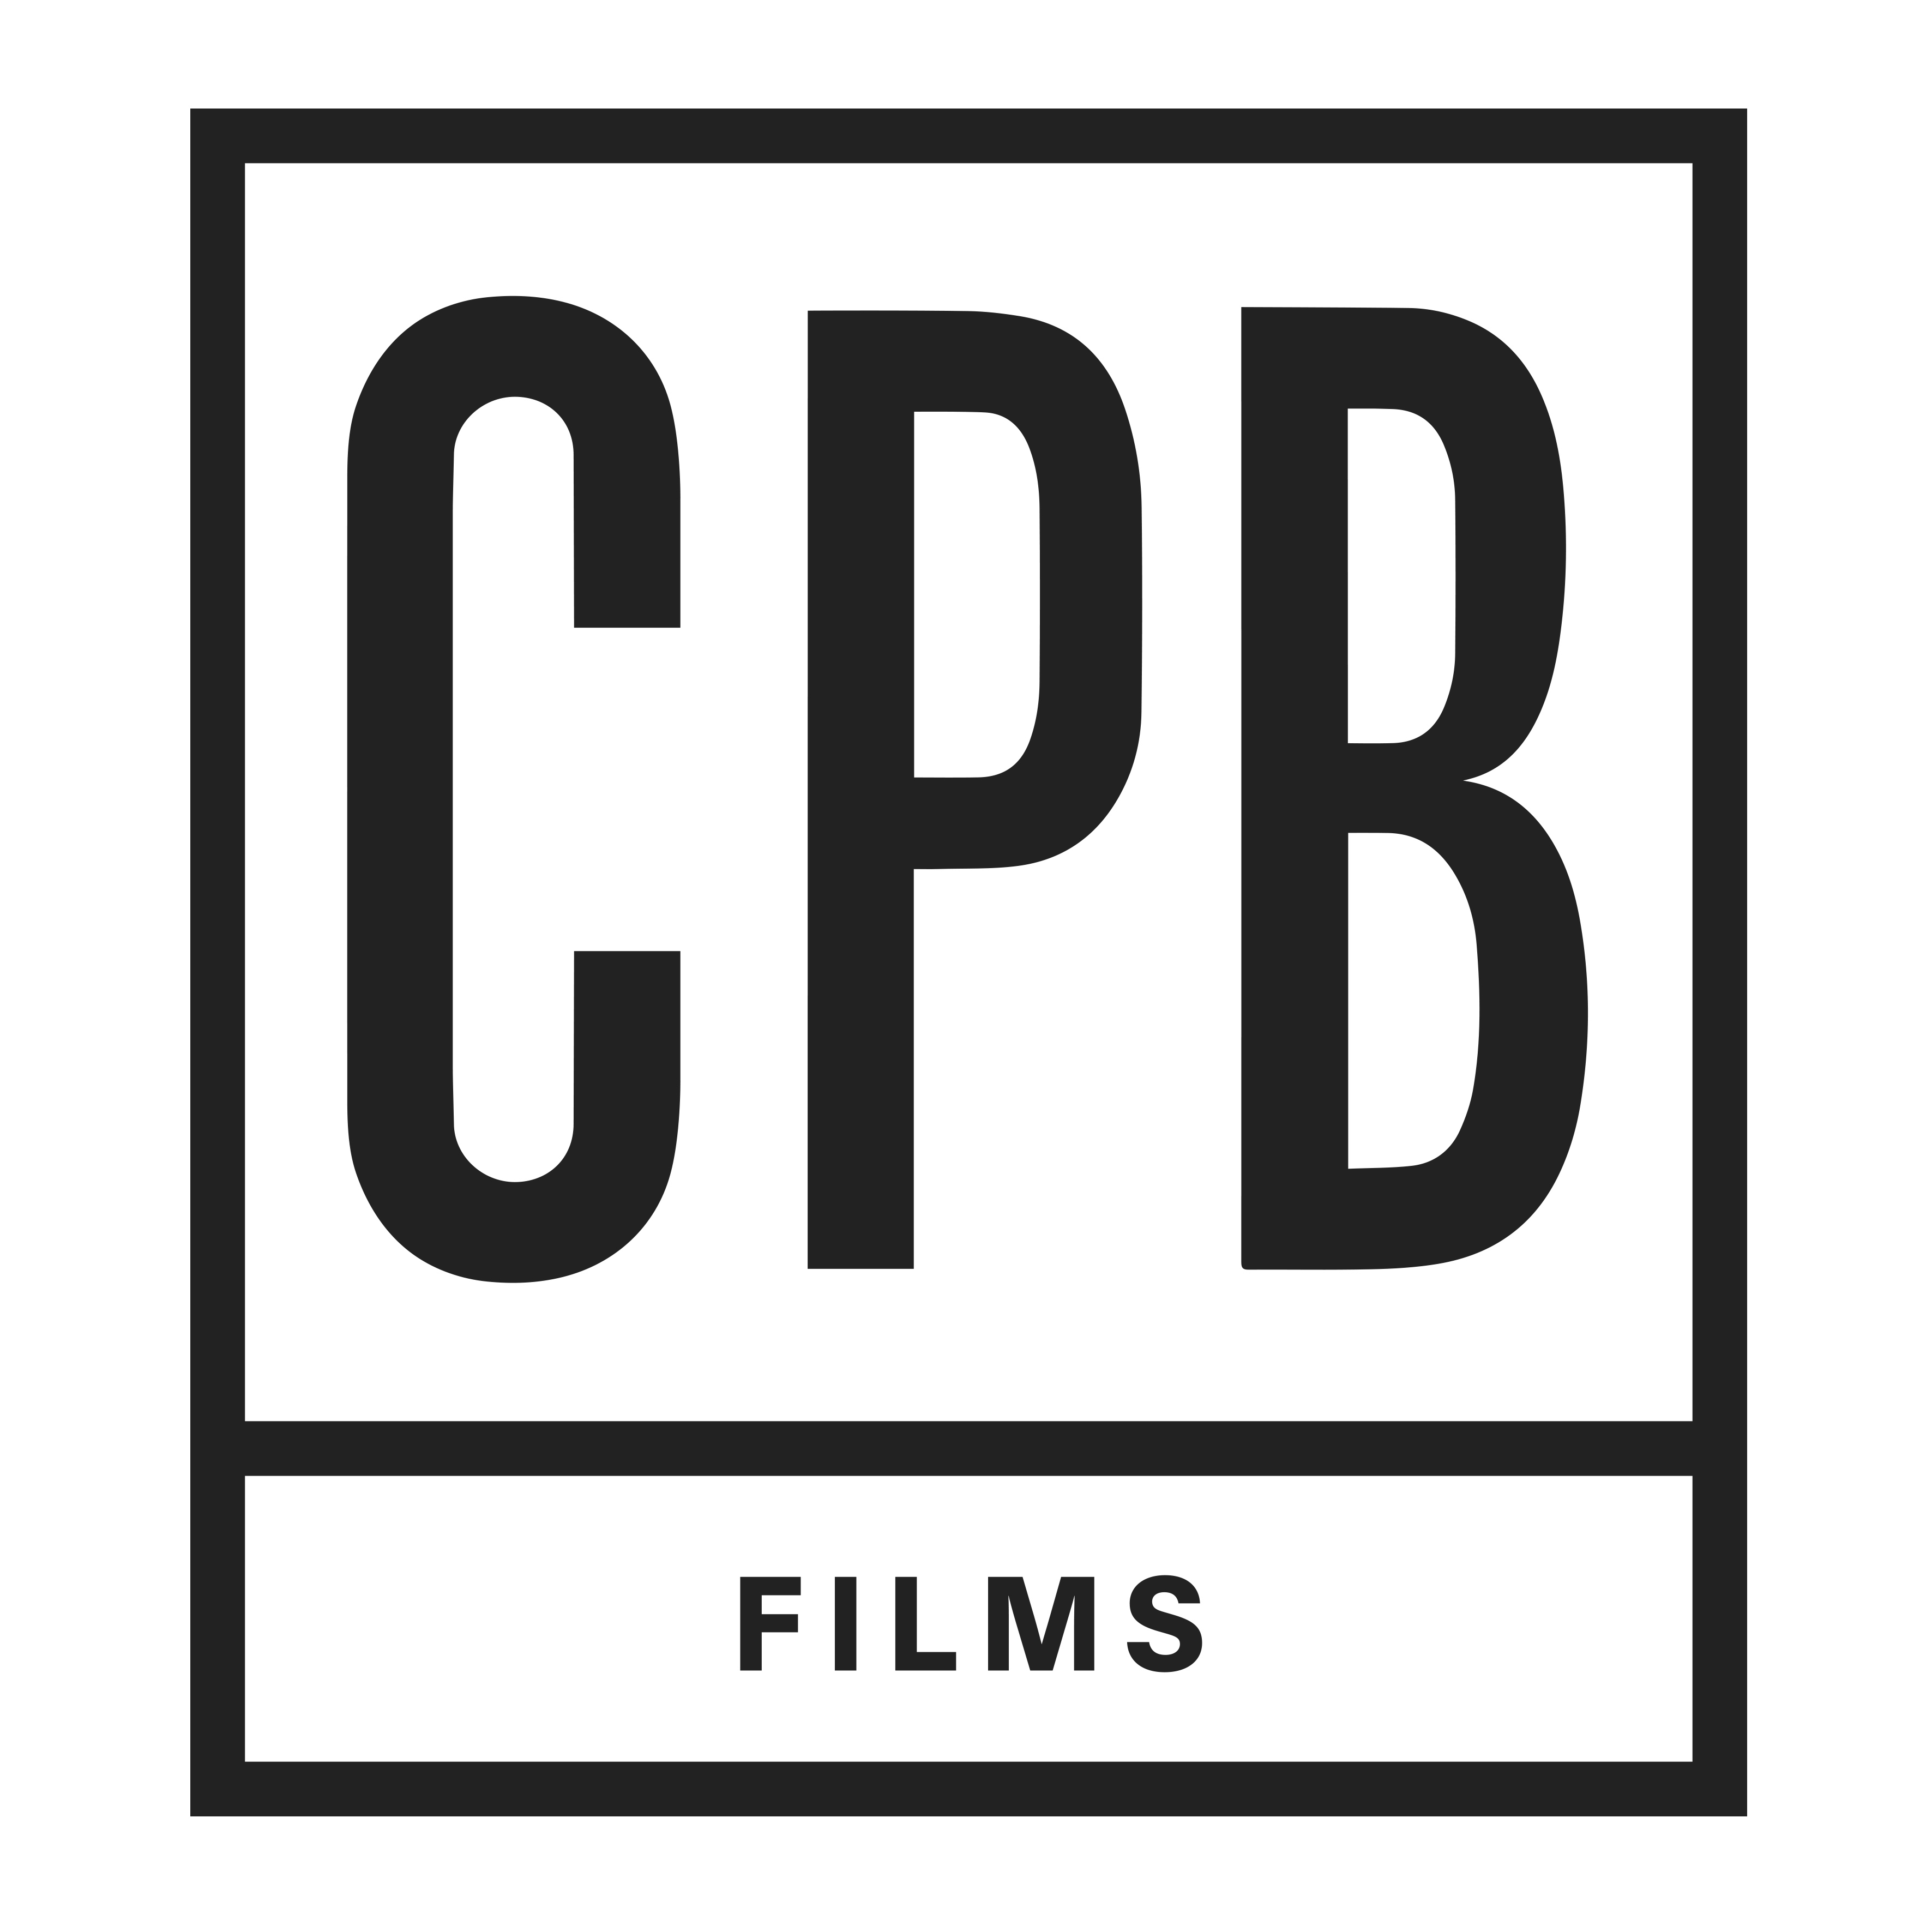 File:CPB films jpg - Wikimedia Commons